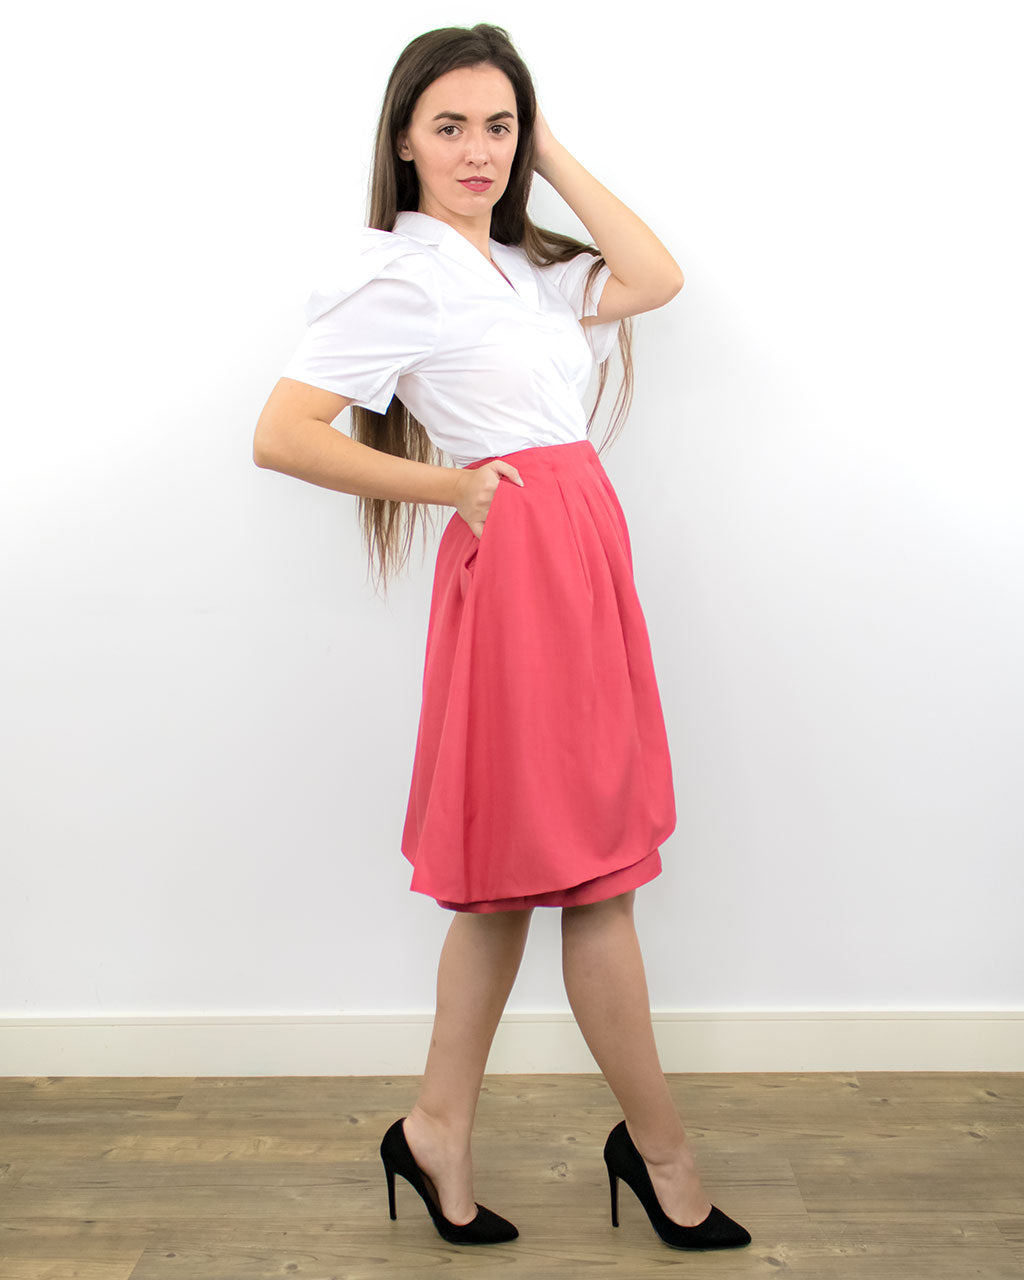 Recycled sustainable double layer modern classic straight office party wedding guest designer skirt ethically made by ADKN UK